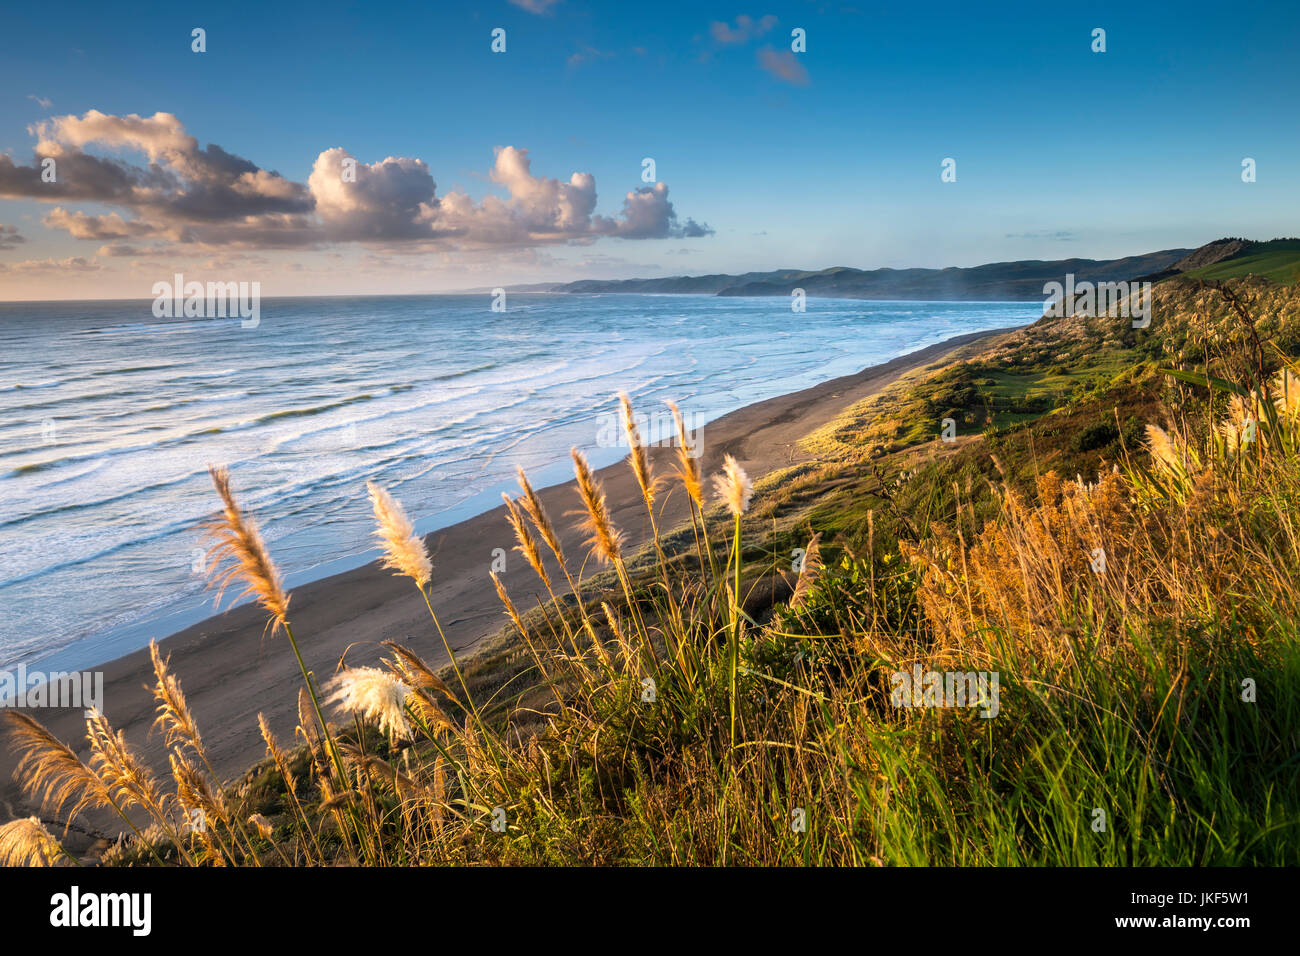 New Zealand, North Island, Raglan, Ngarunui Beach in the evening - Stock Image